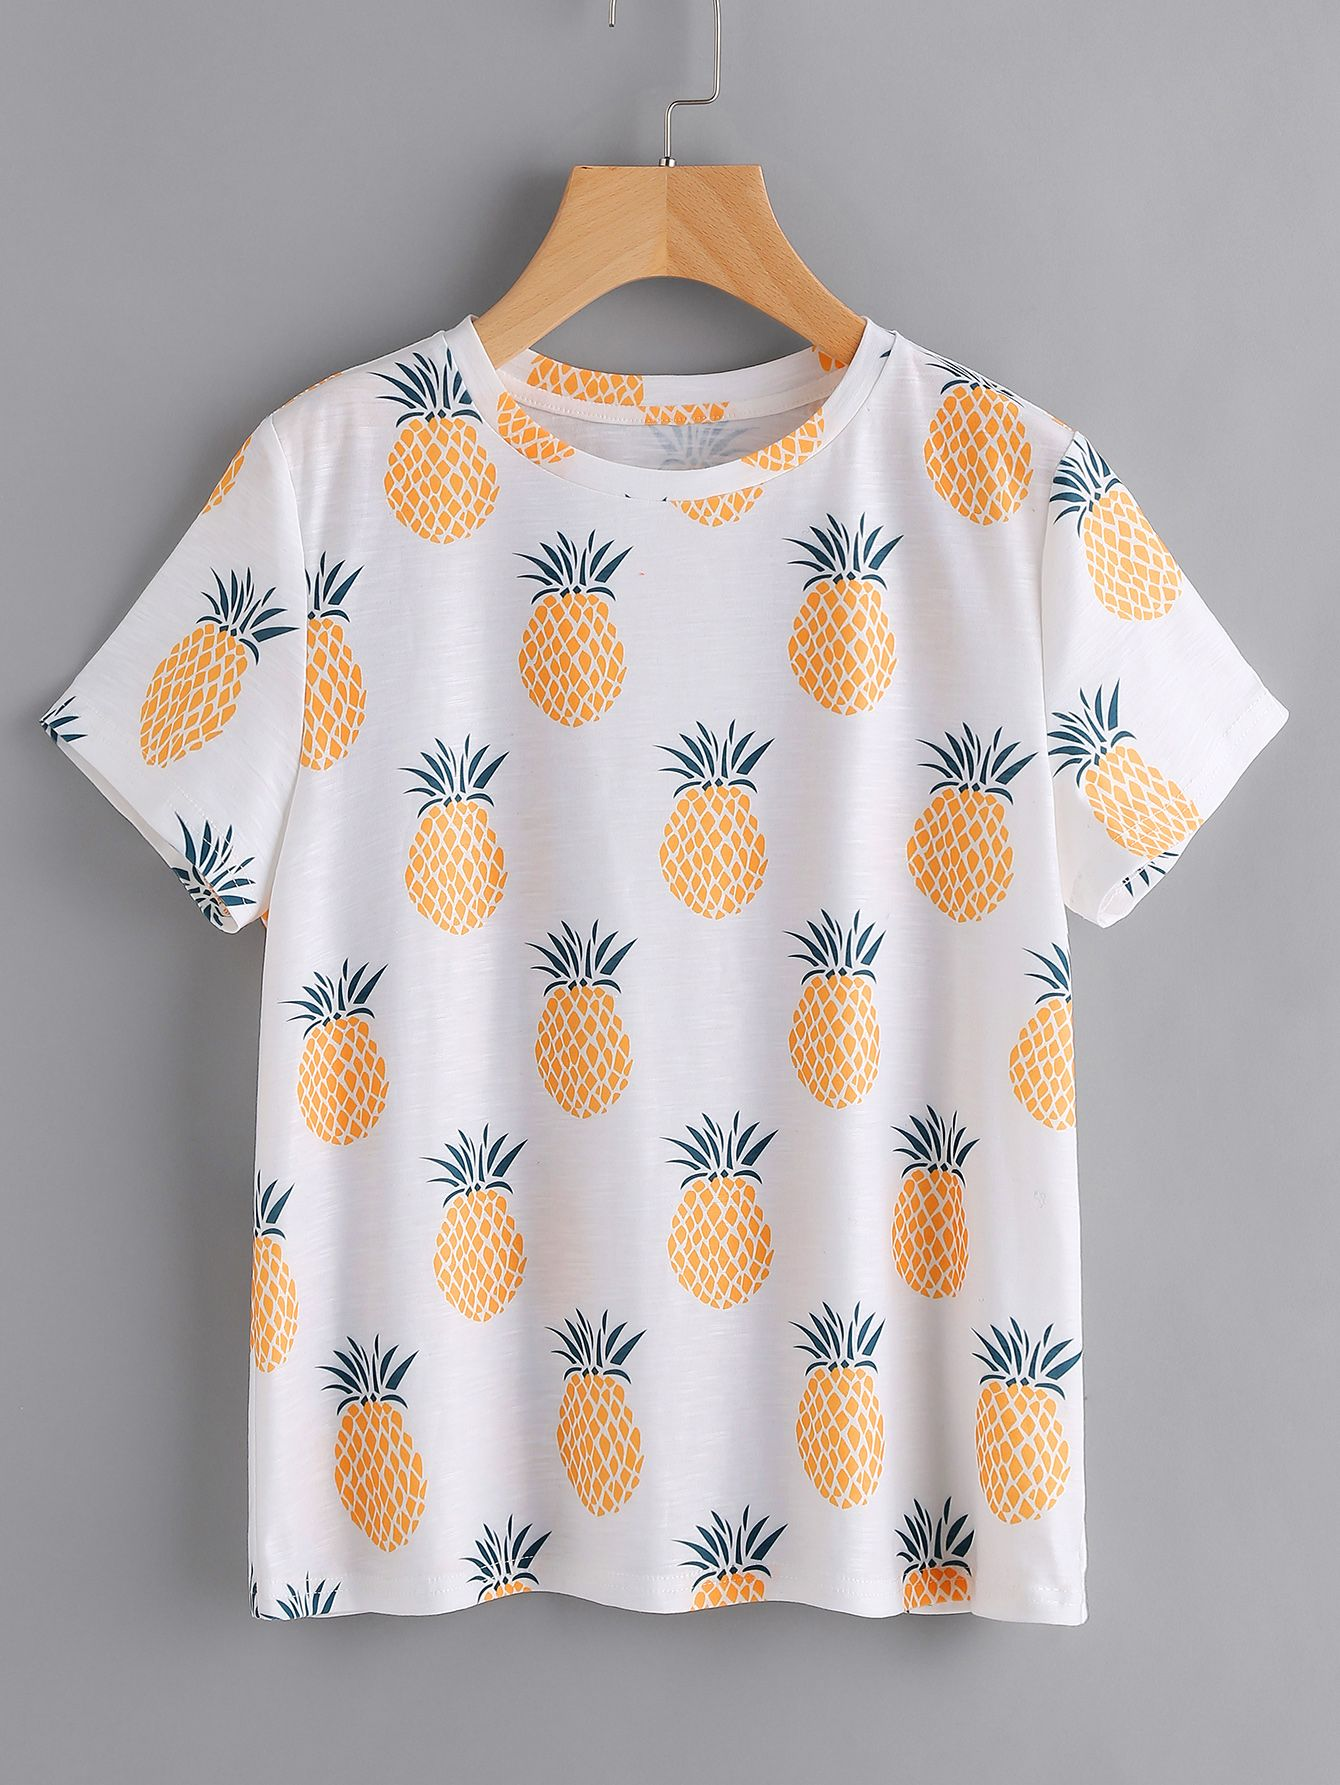 f2e05edb453a Shop Allover Pineapple Print Slub Tee online. SheIn offers Allover Pineapple  Print Slub Tee & more to fit your fashionable needs.